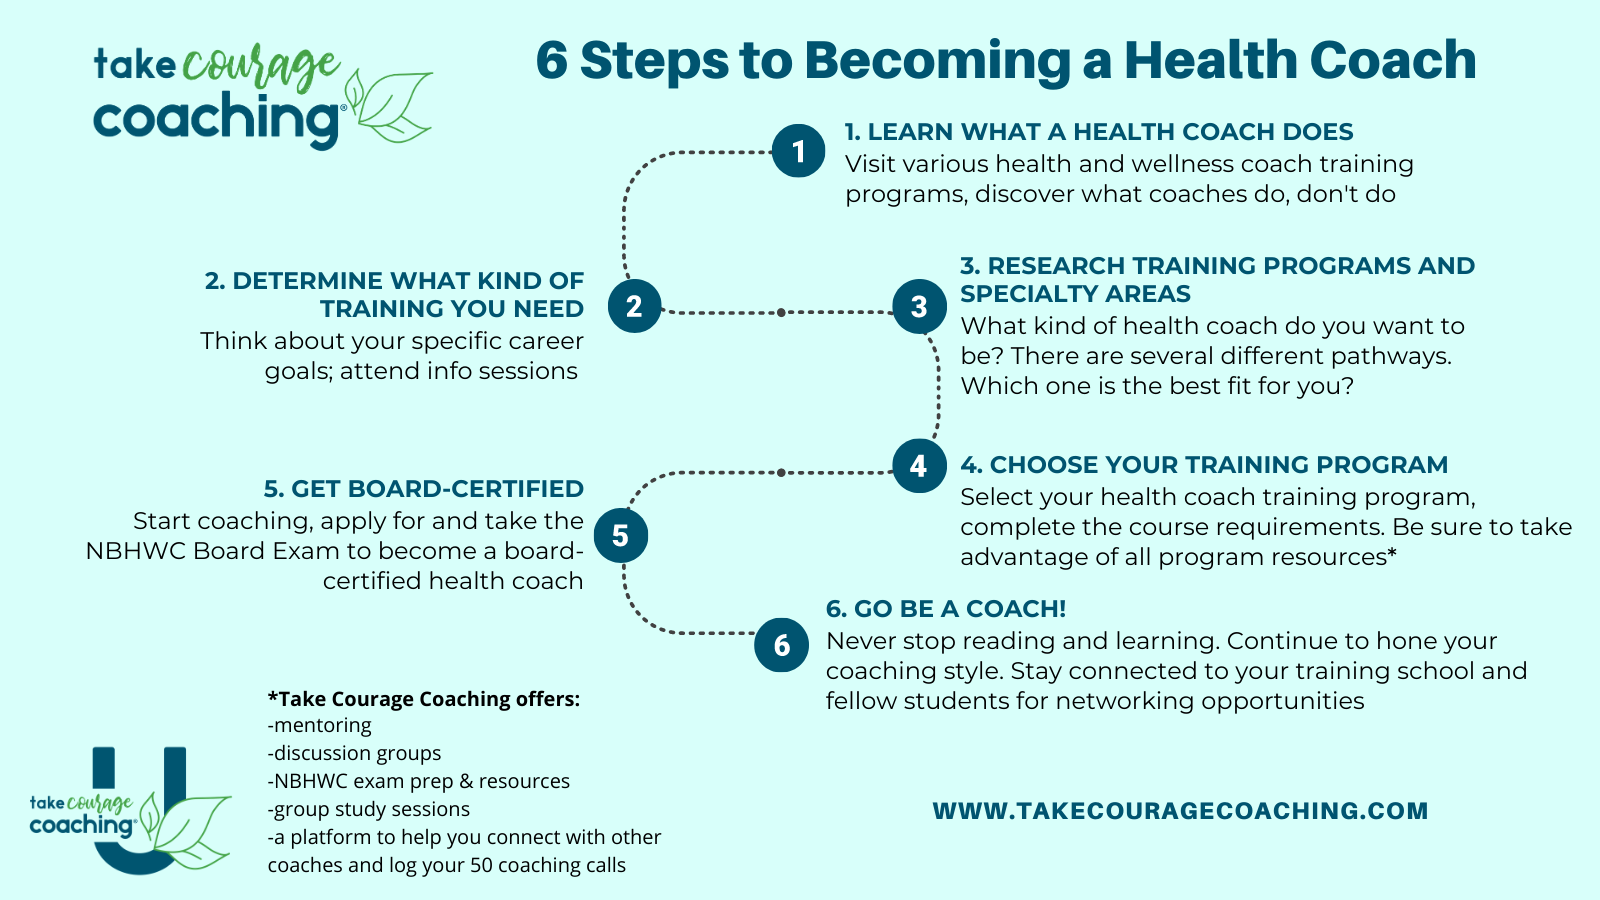 Roadmap showing 6 steps to becoming a health and wellness coach